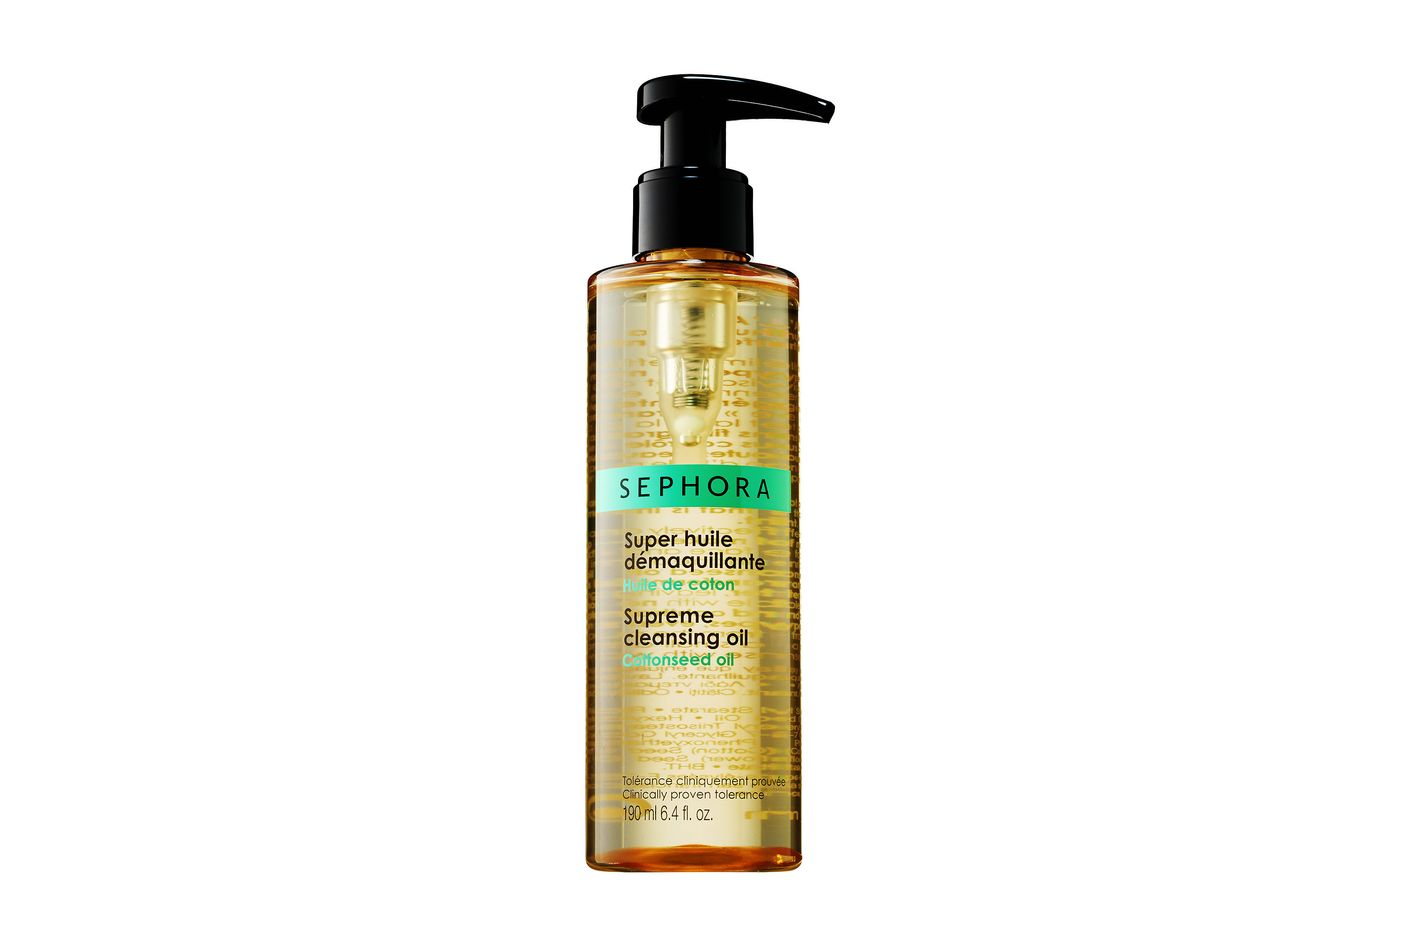 Sephora Cleansing Oil